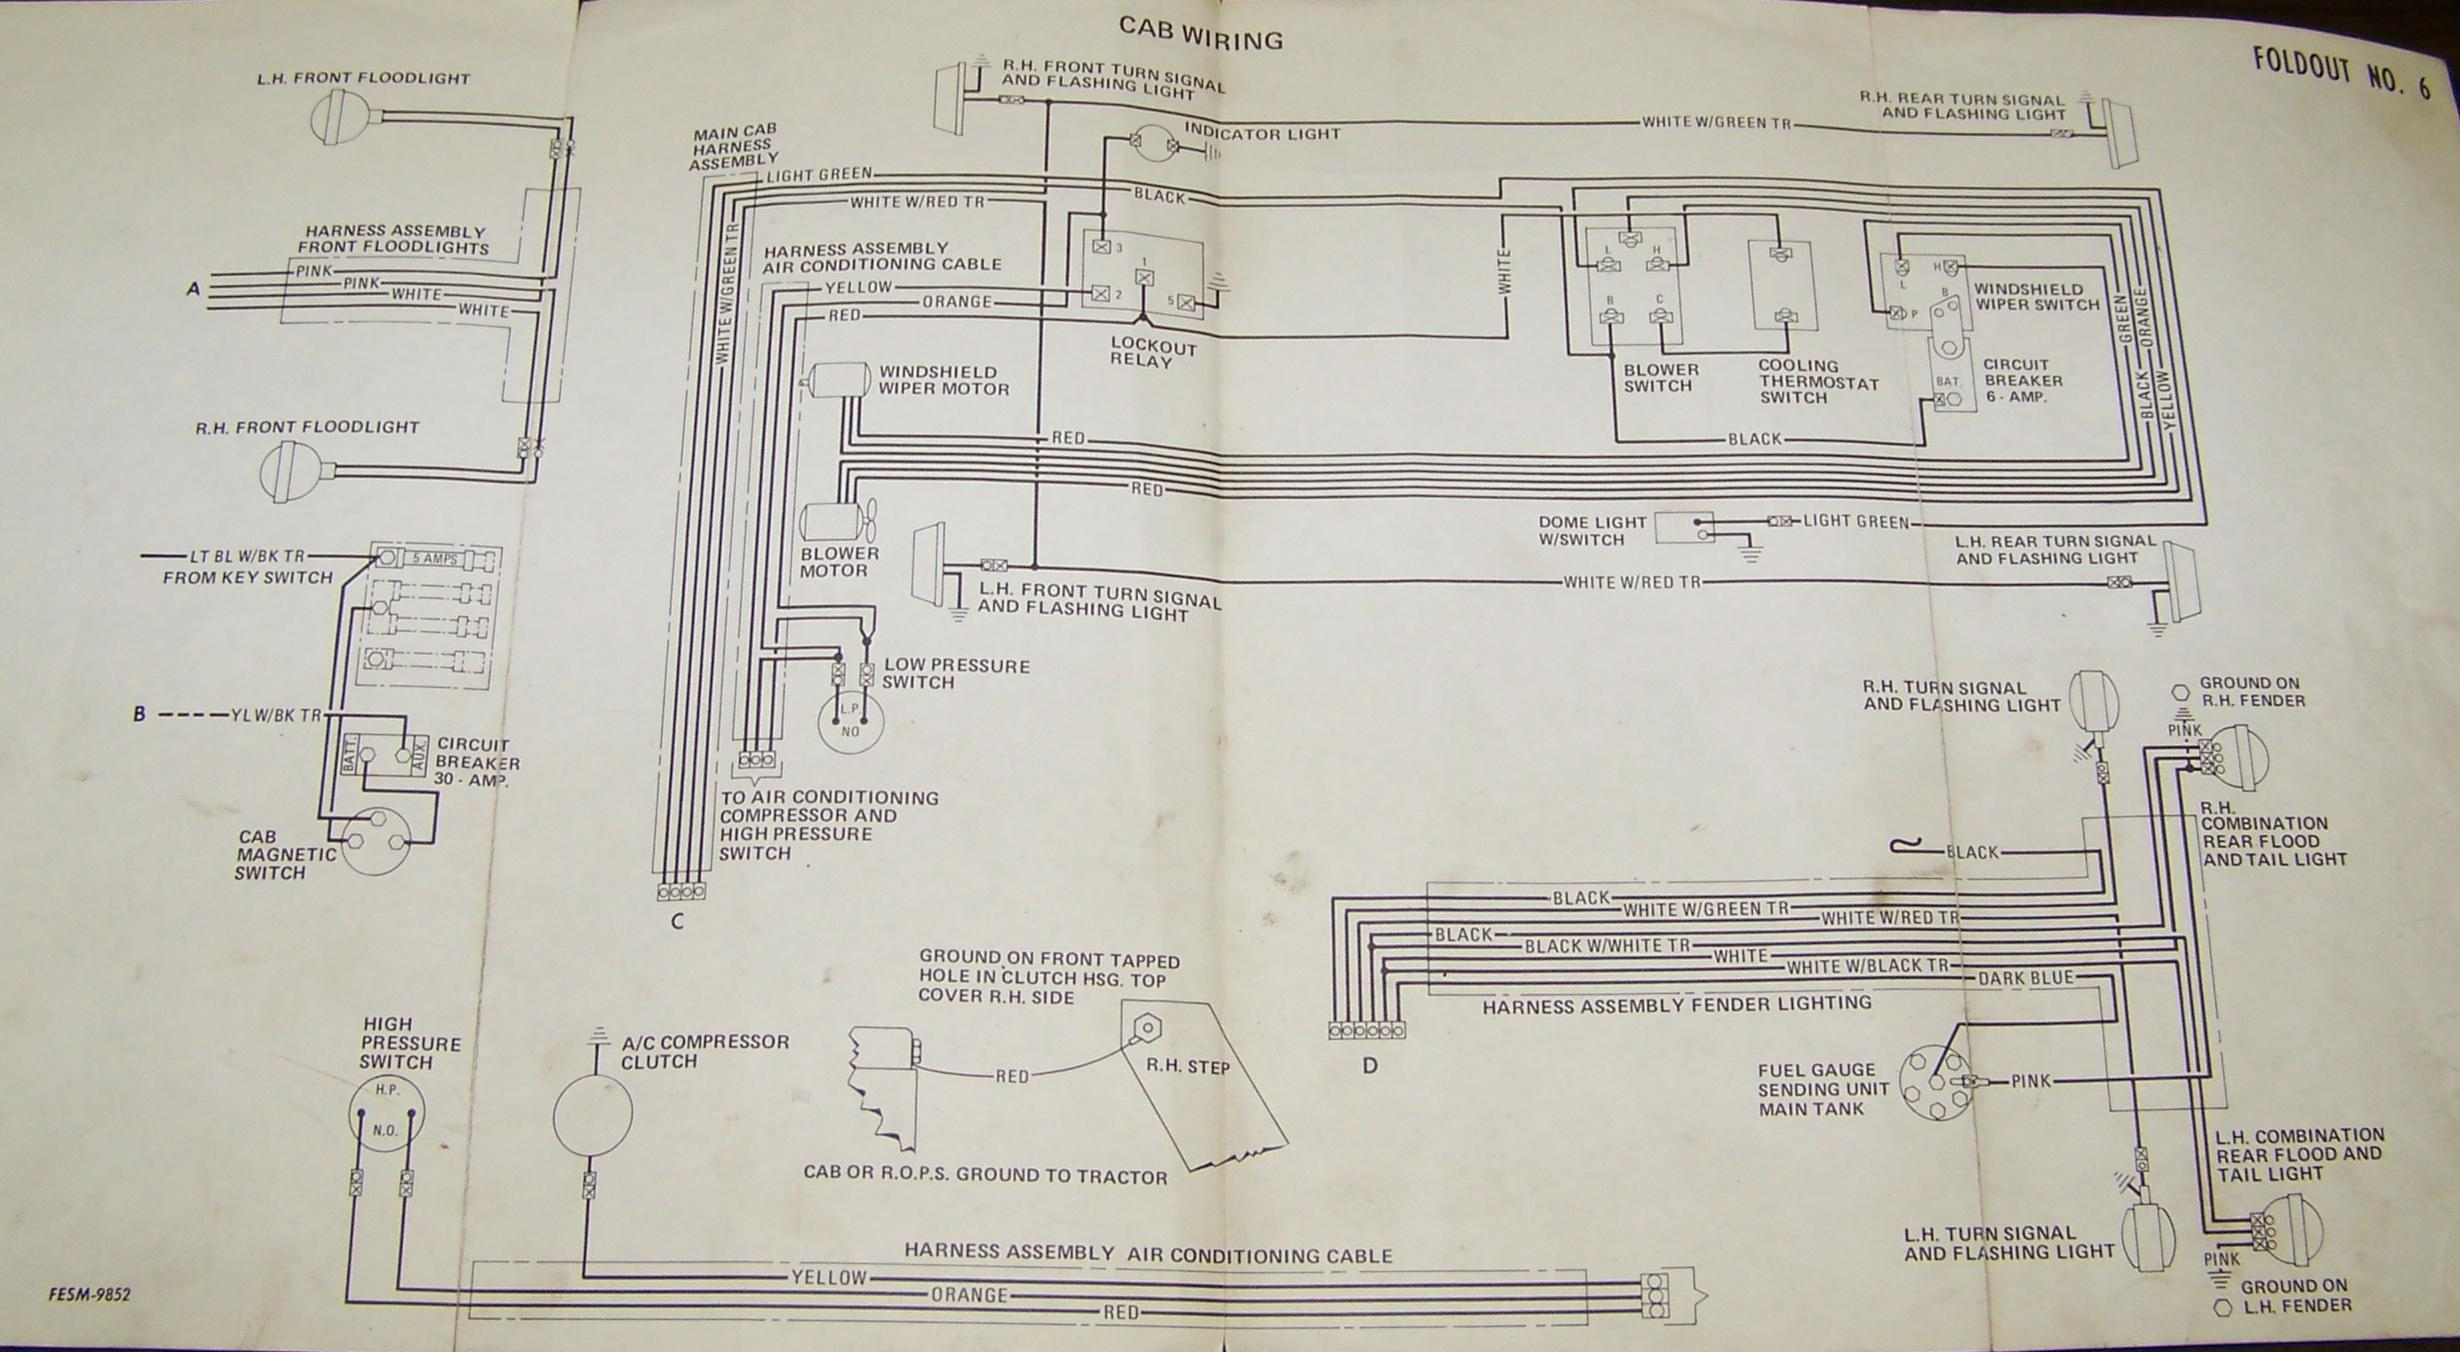 86series6 international motor diagrams ge electric motor wiring diagram 856 international wiring harness at readyjetset.co